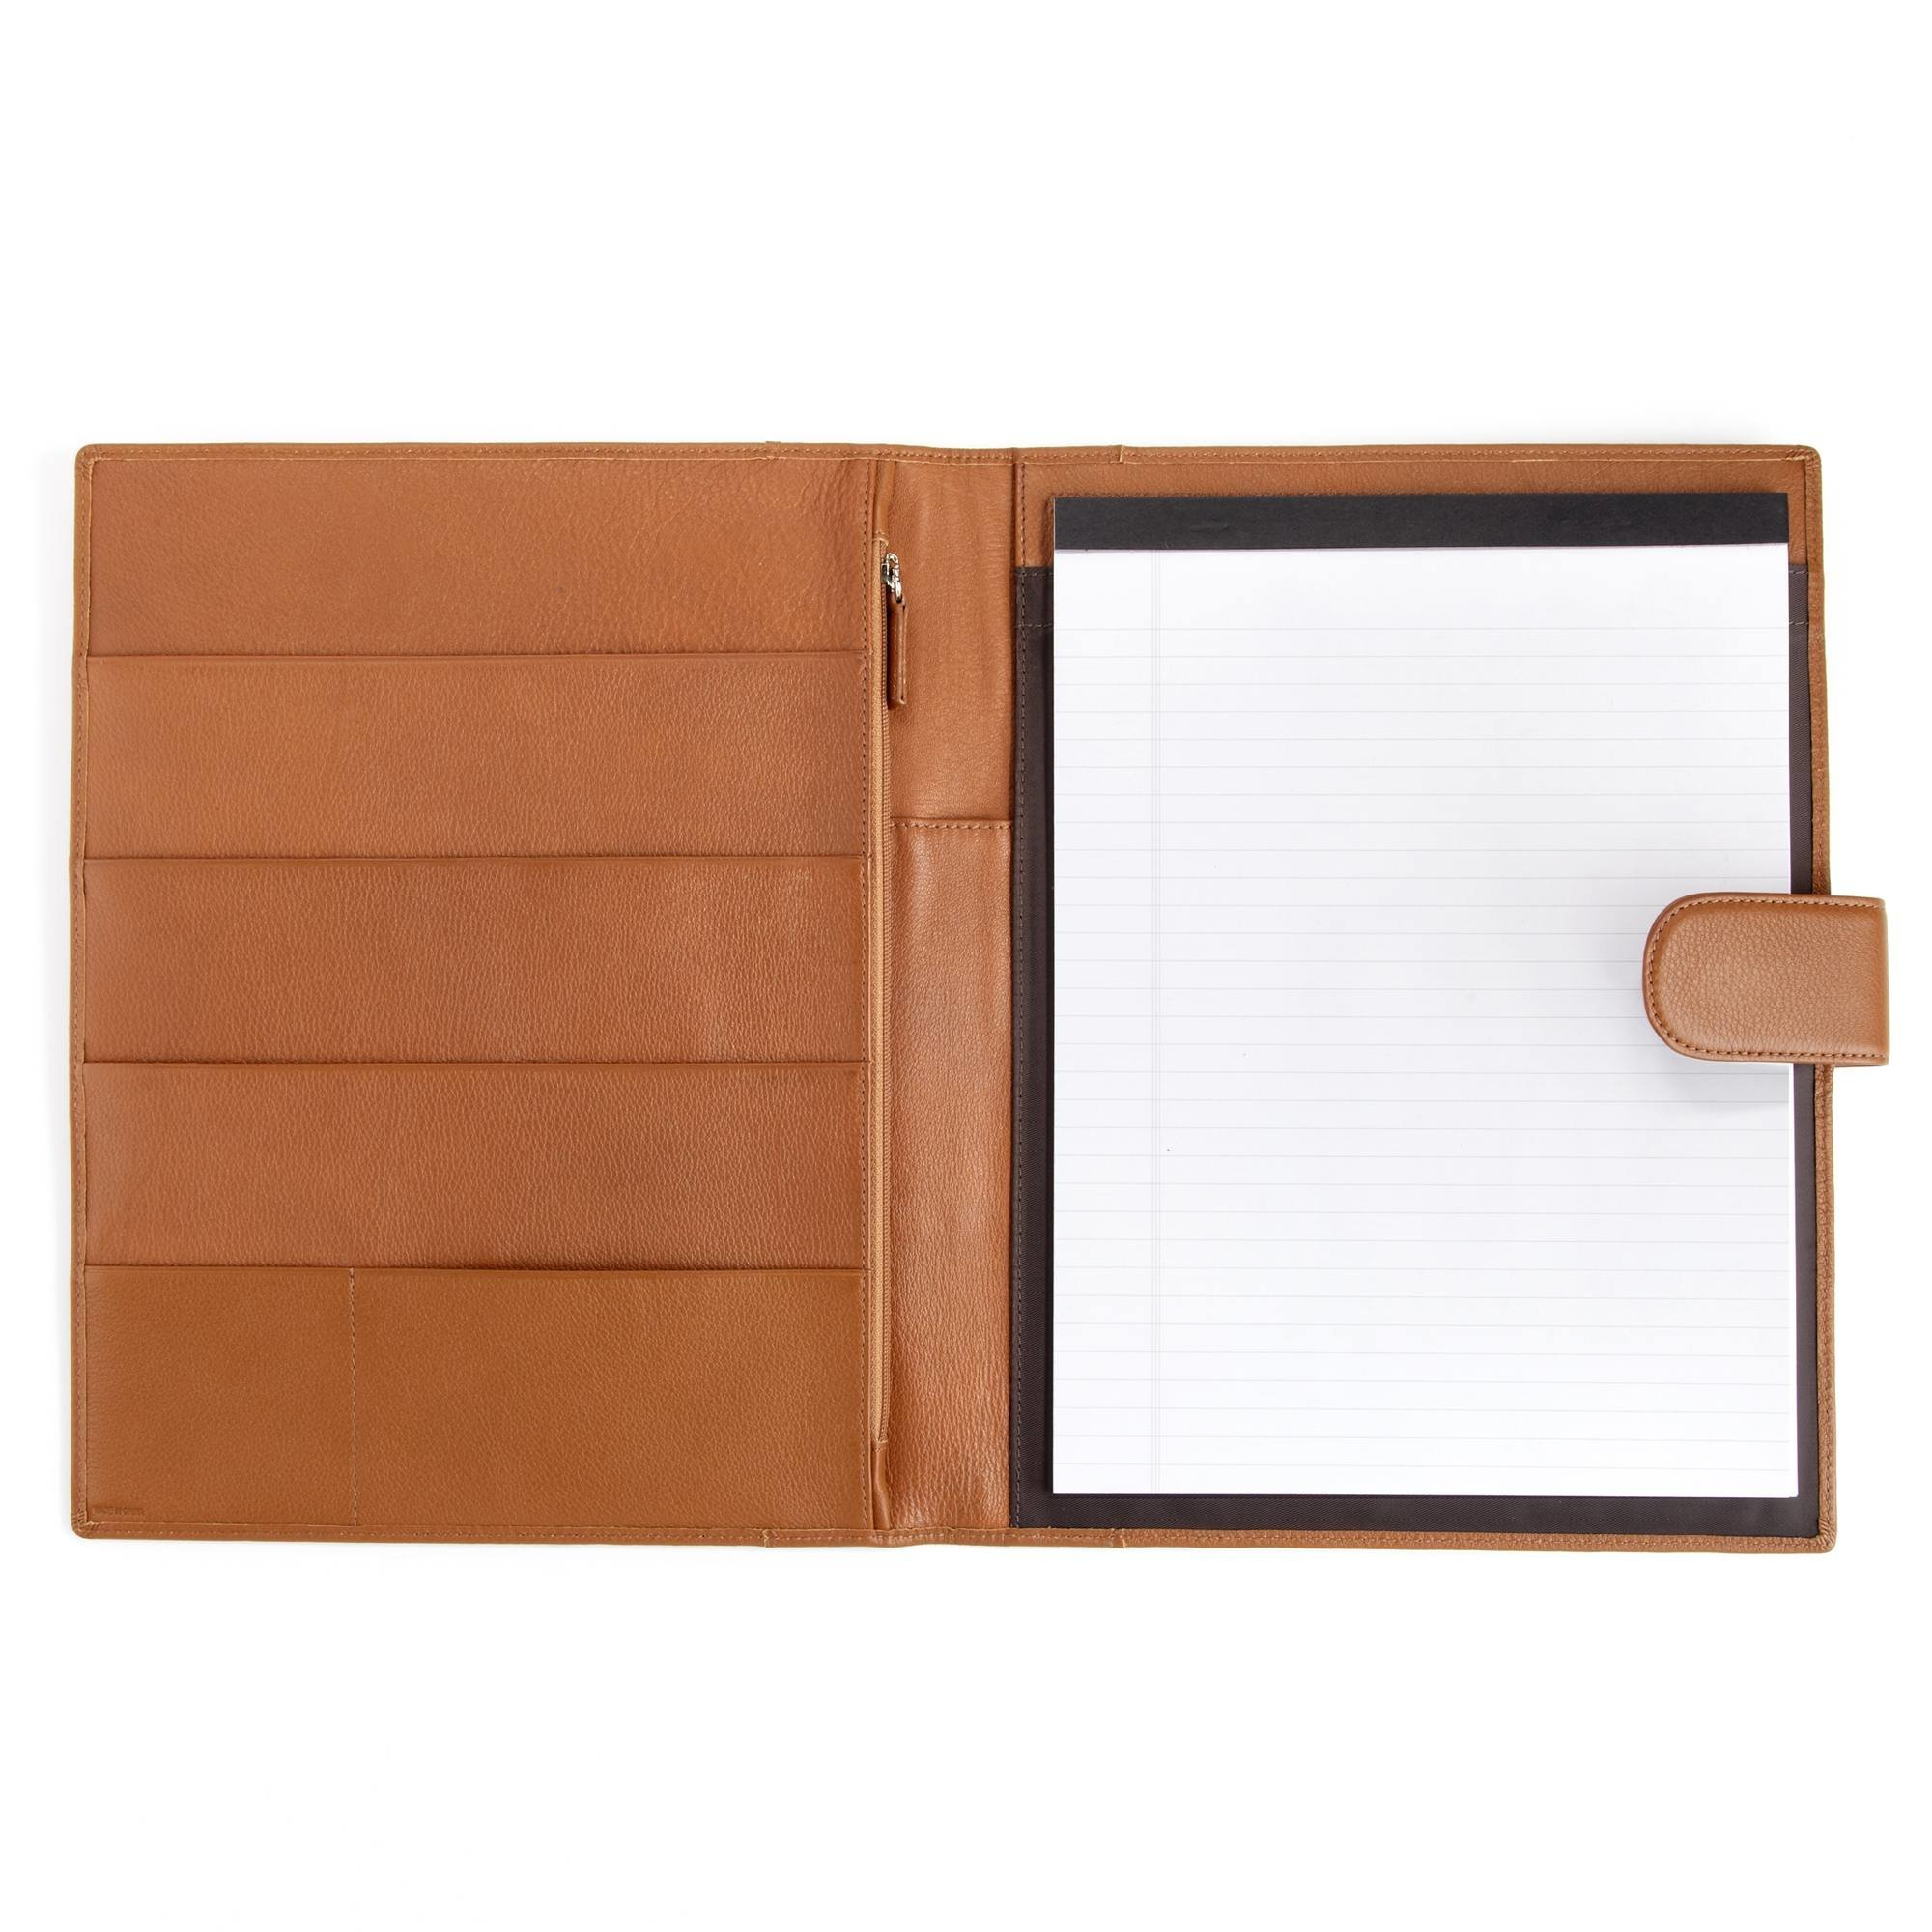 Leatherology Organizer Portfolio with Tablet Pocket & Magnetic Closure - Full Grain Leather - Cognac (brown)